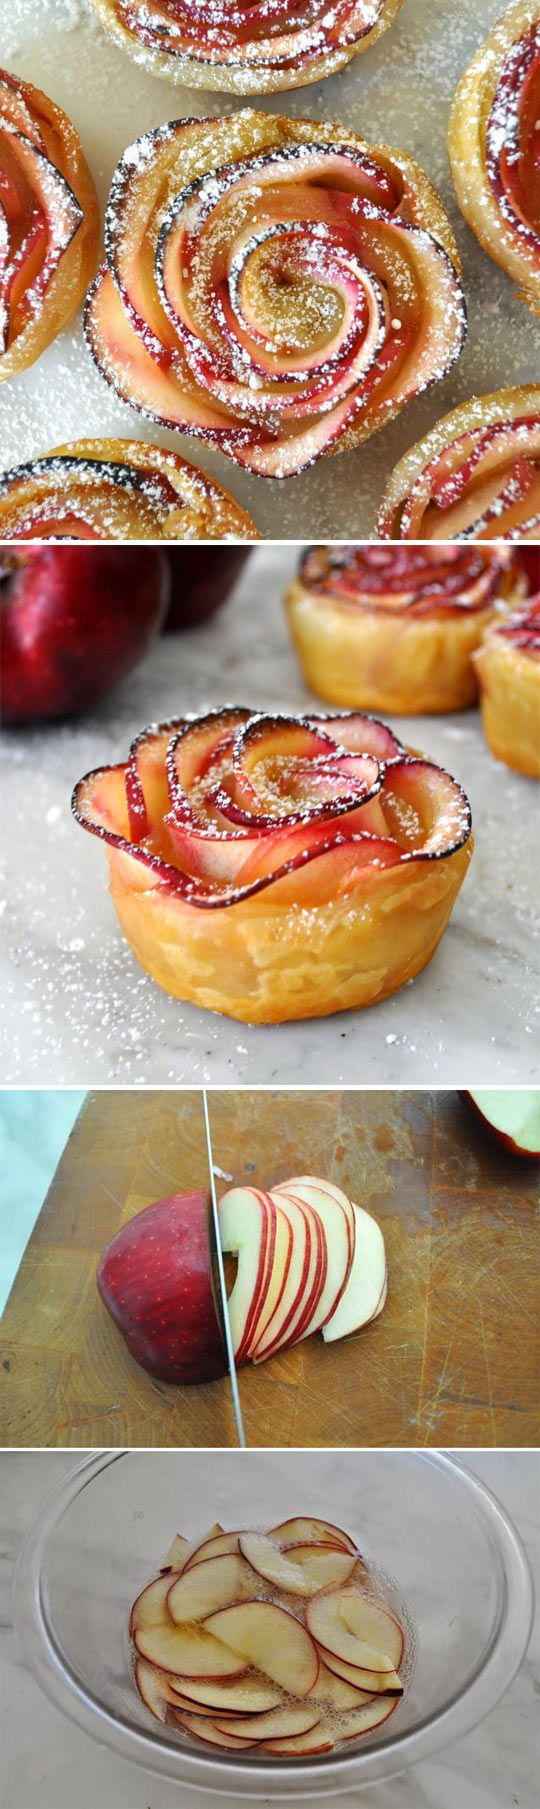 cool-apple-rose-pie-delicious